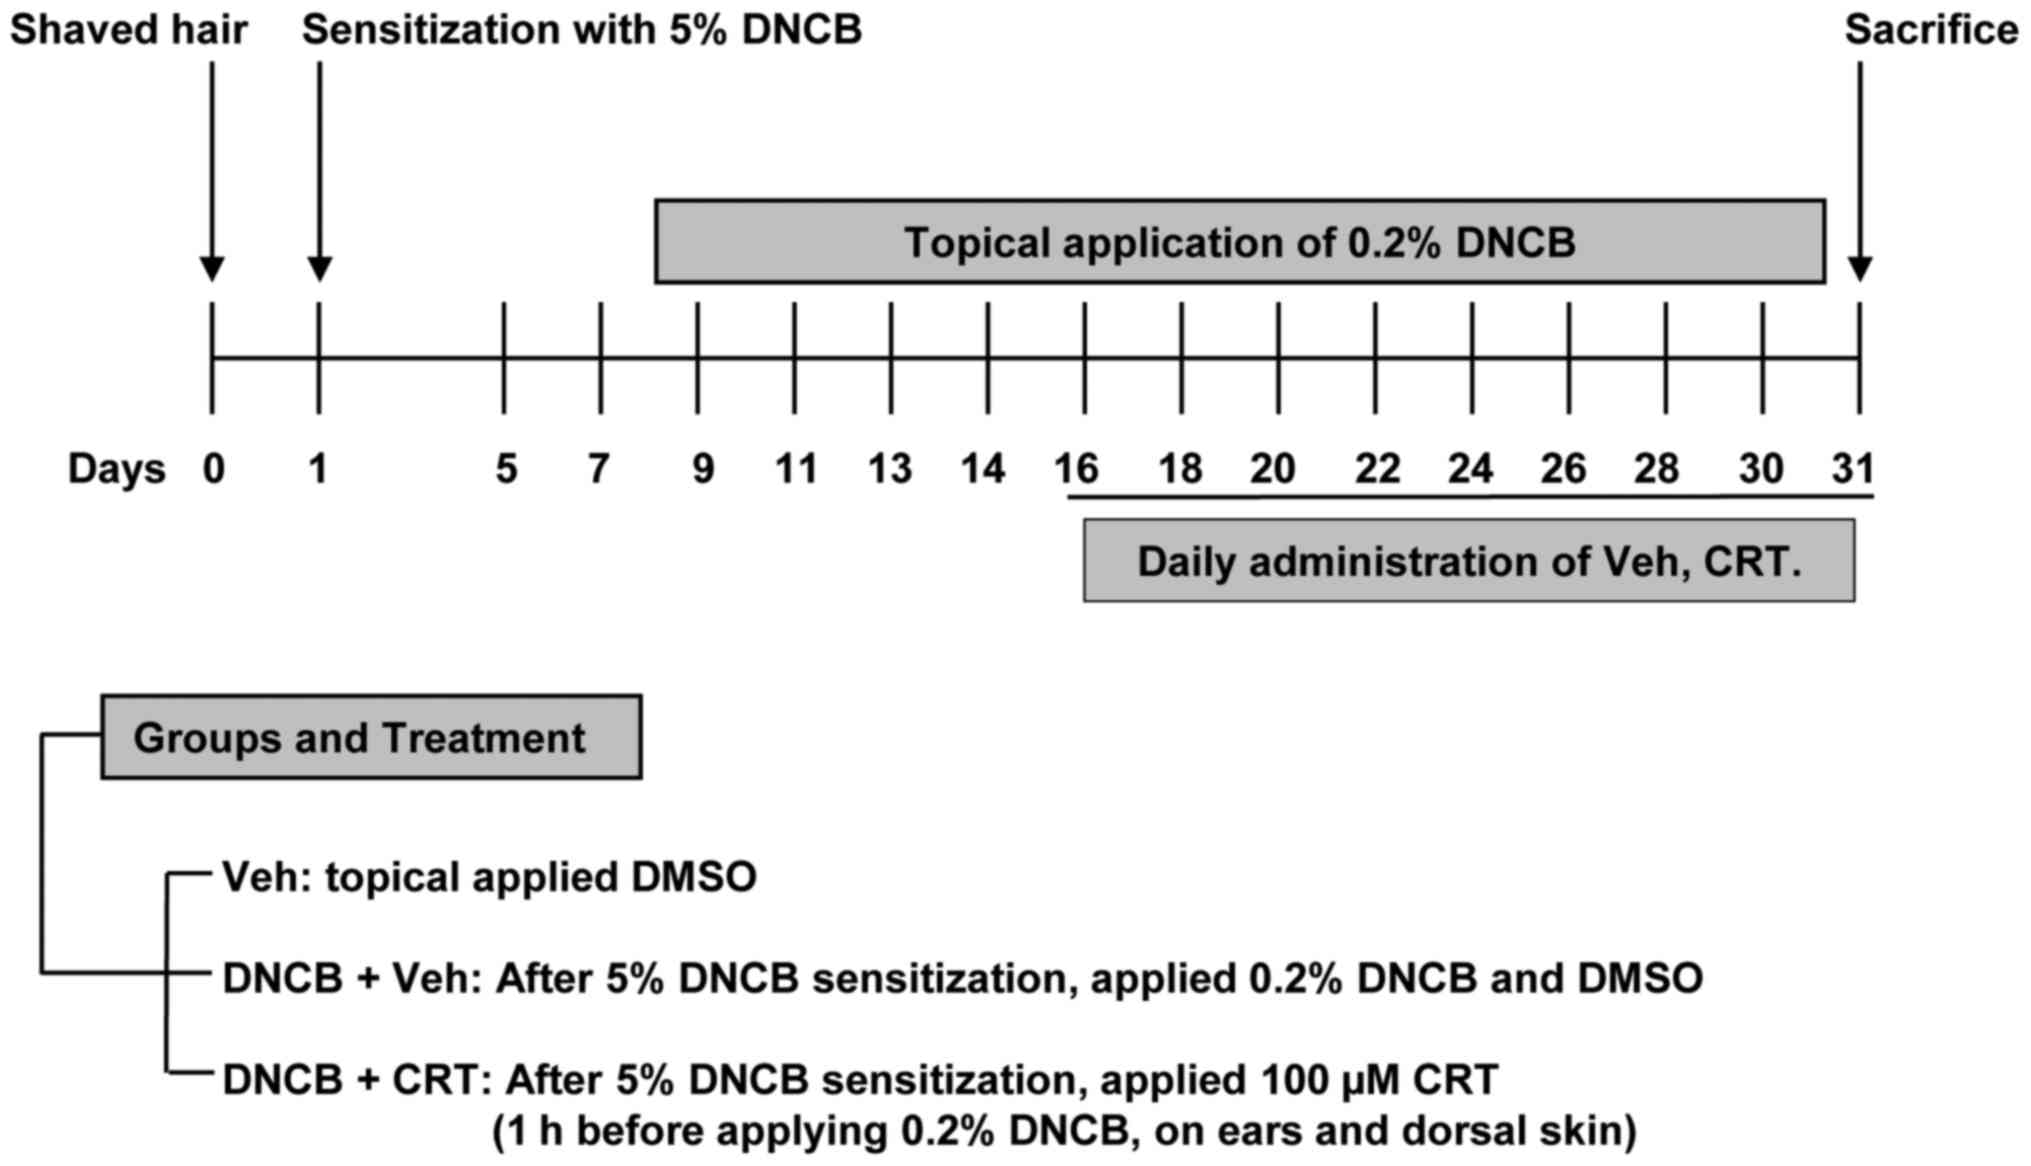 Cryptotanshinone Inhibits Igemediated Degranulation Through Crt Schematic Diagram Of Developing Dncb Induced Atopic Dermatitis Like Inflammation For Animal Experiments 6 Week Old Balb C Mice Were Divided